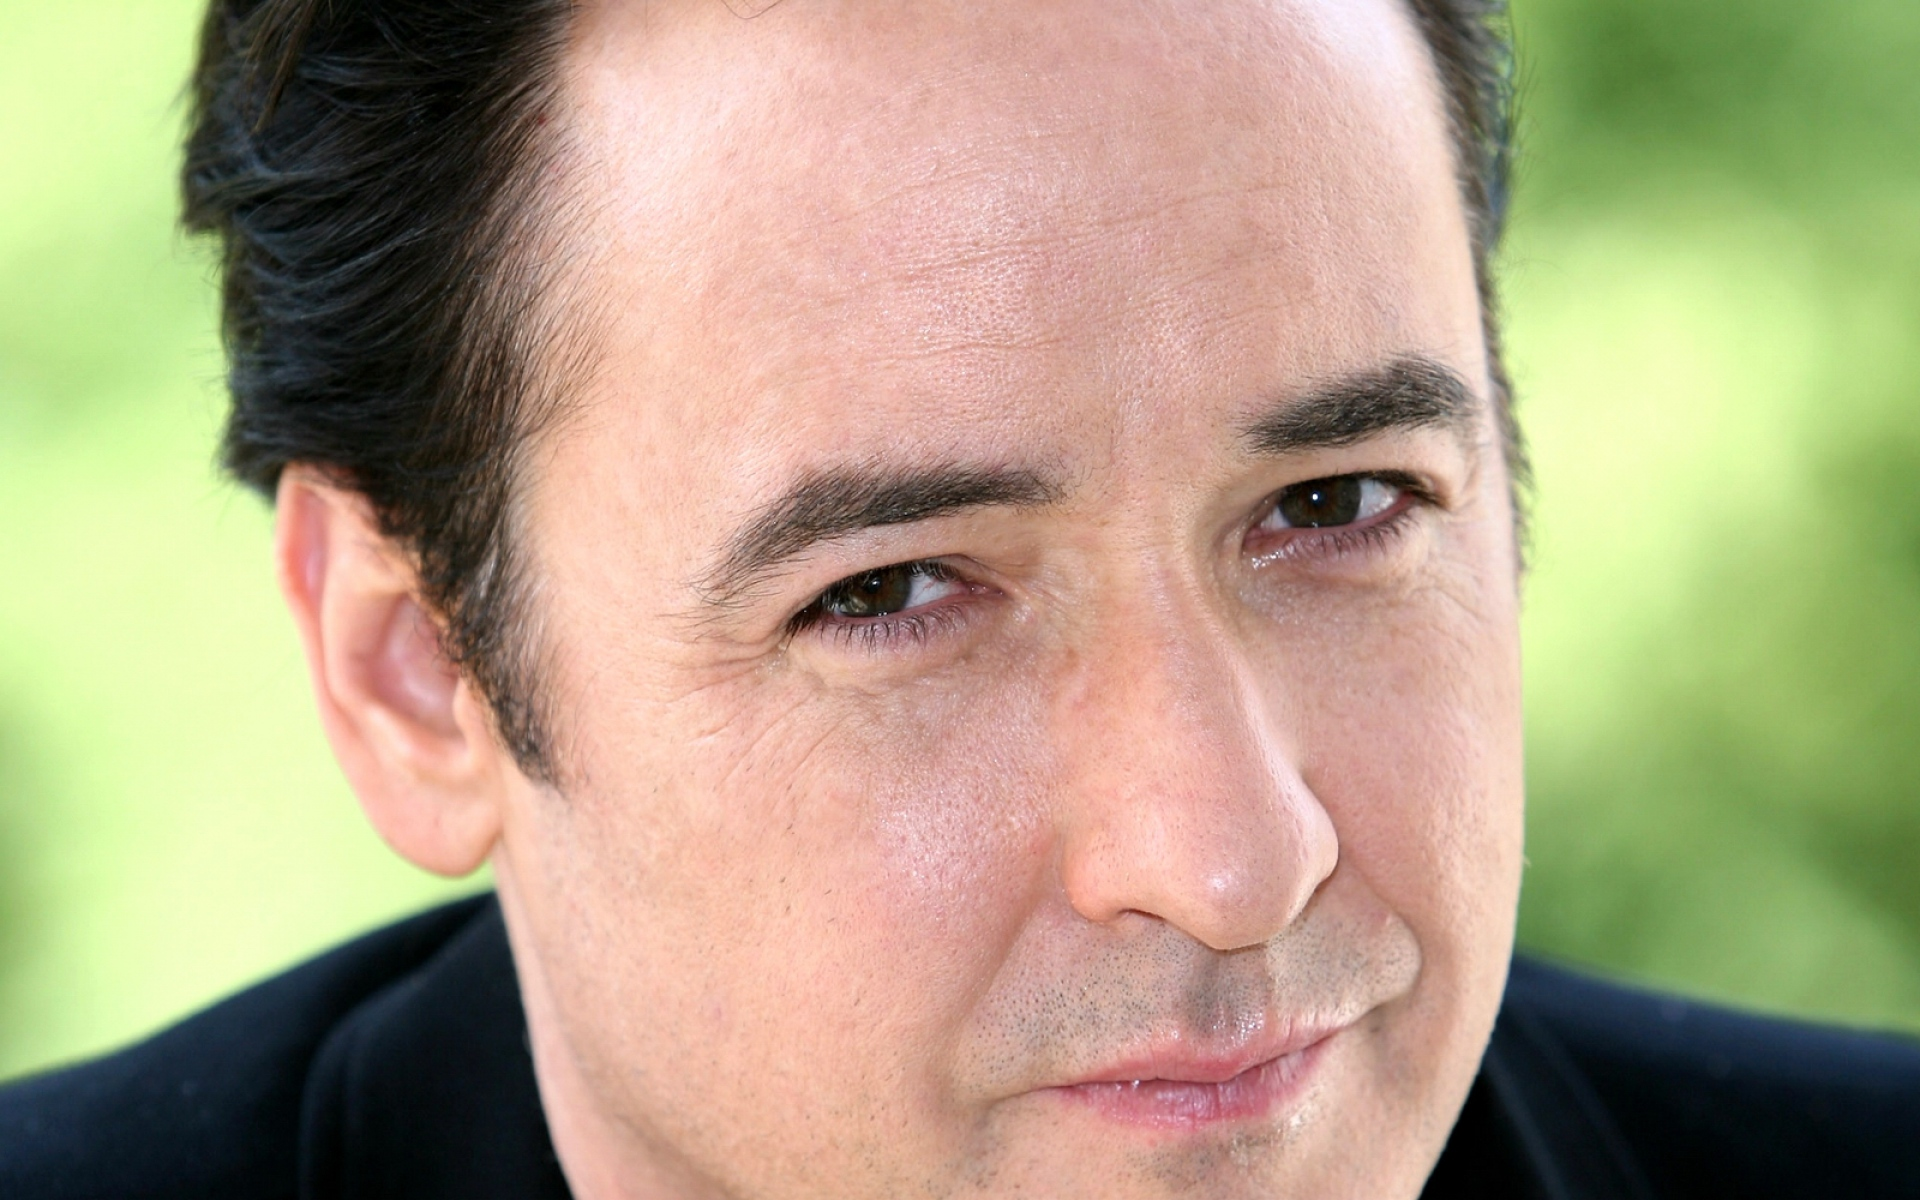 john cusack widescreen desktop wallpaper 1559